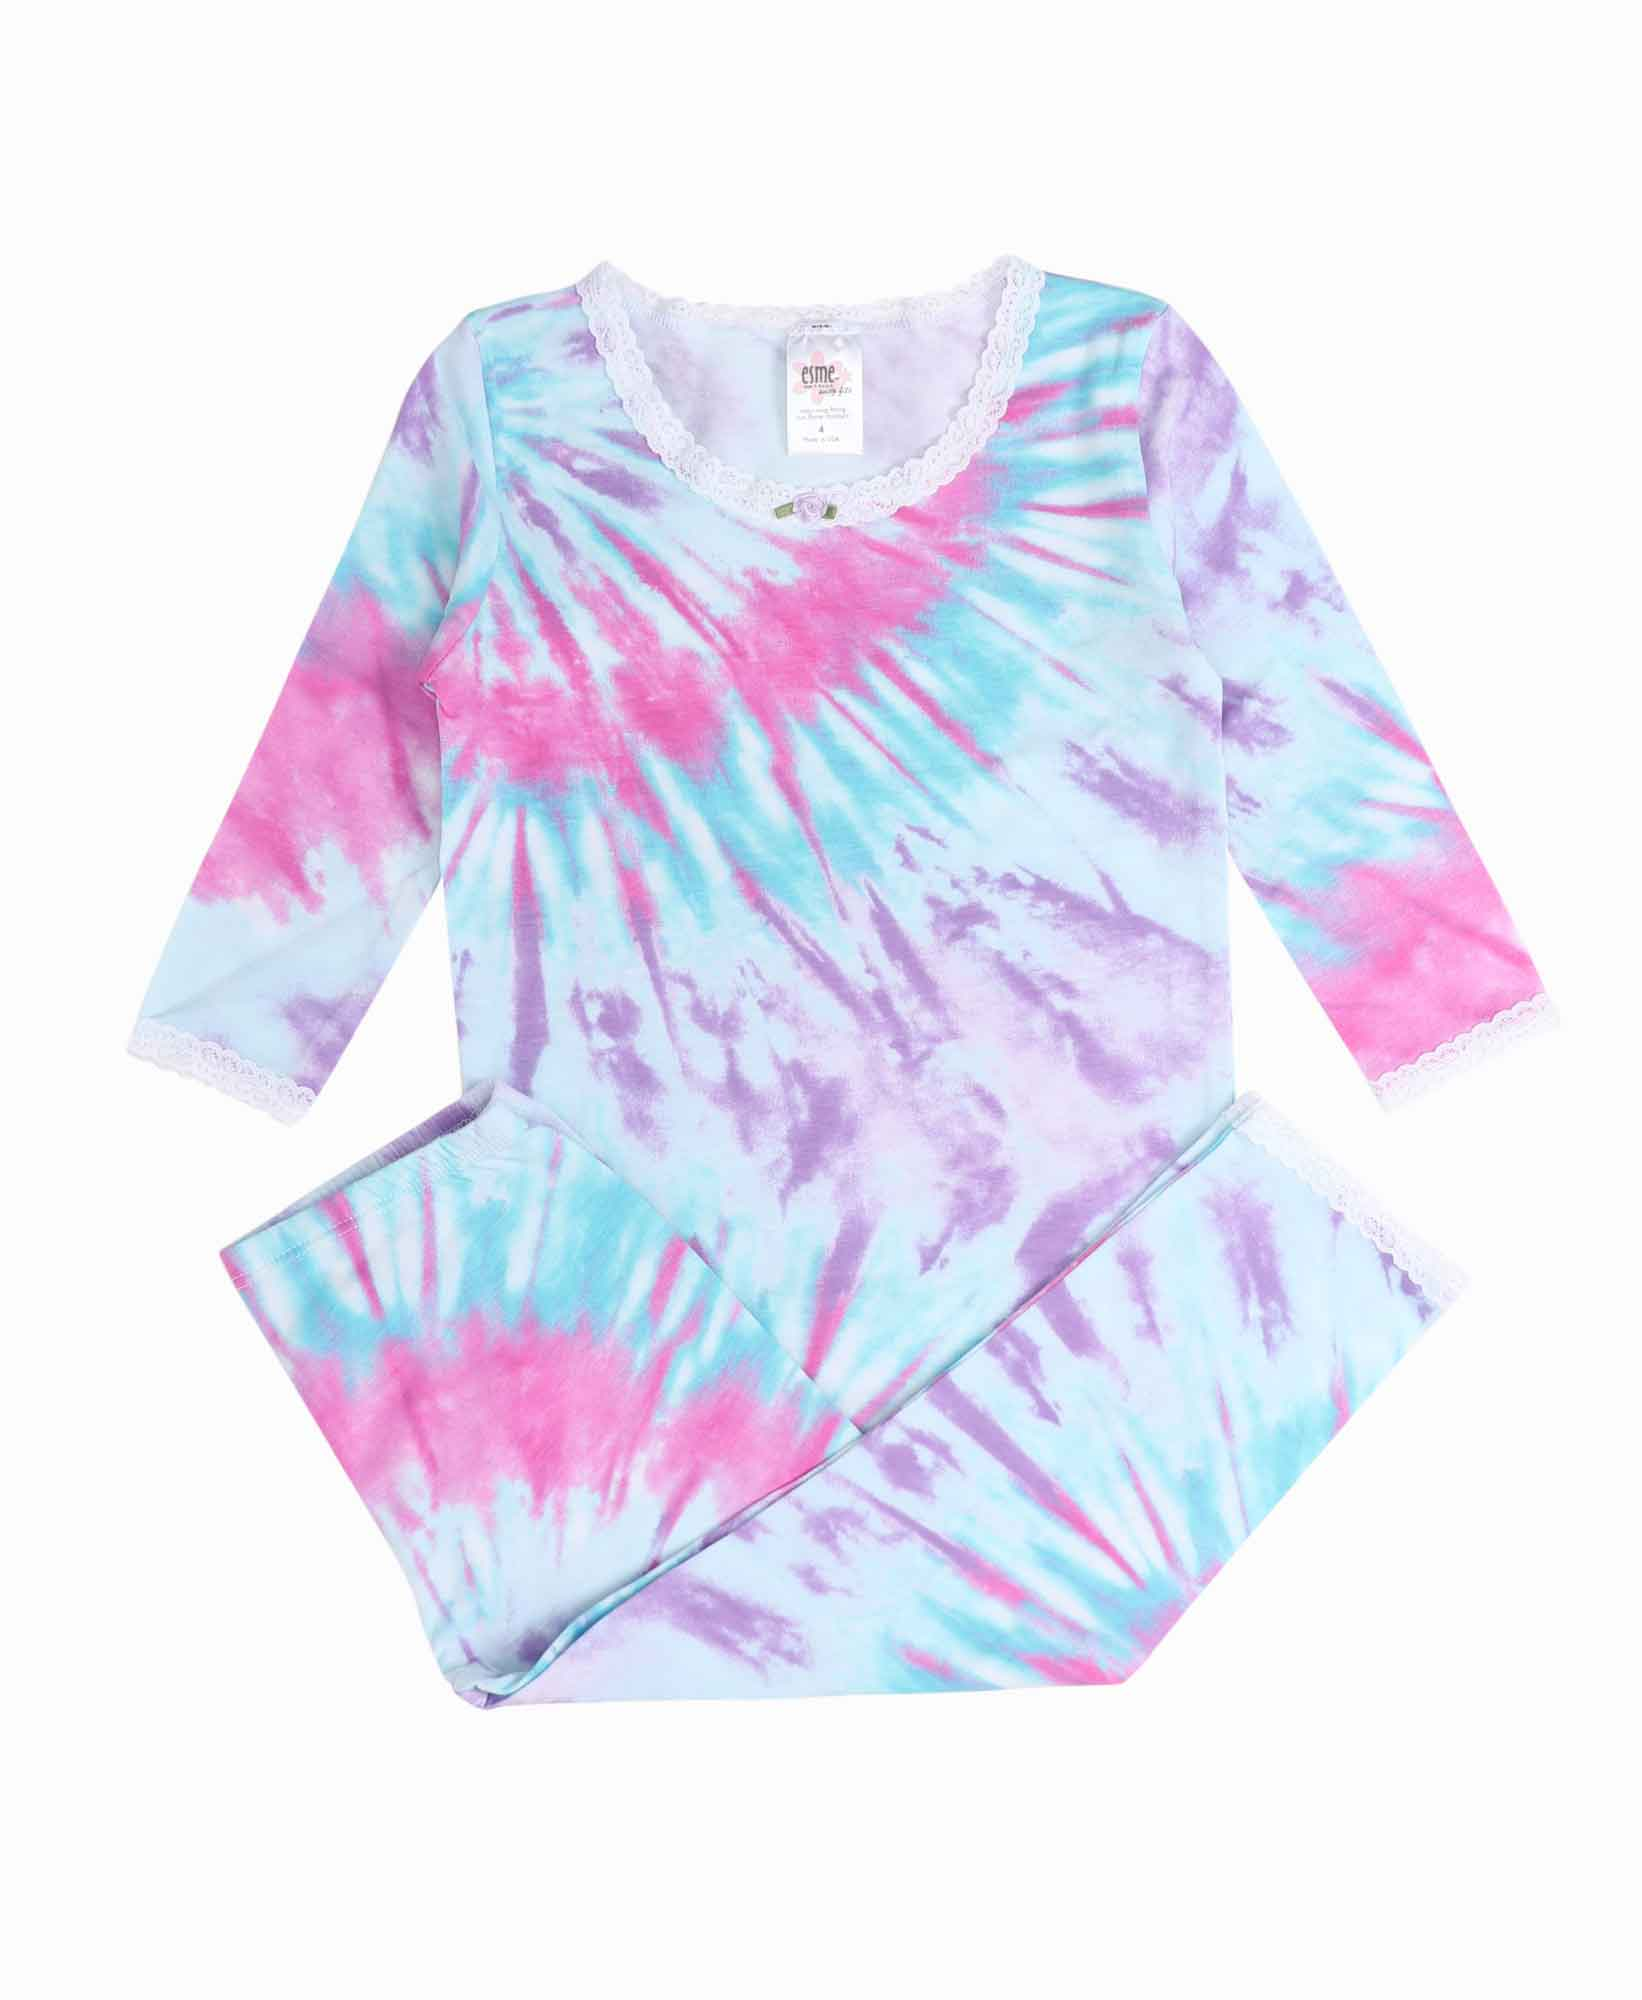 Esme Bright Tie Dye PJ Set